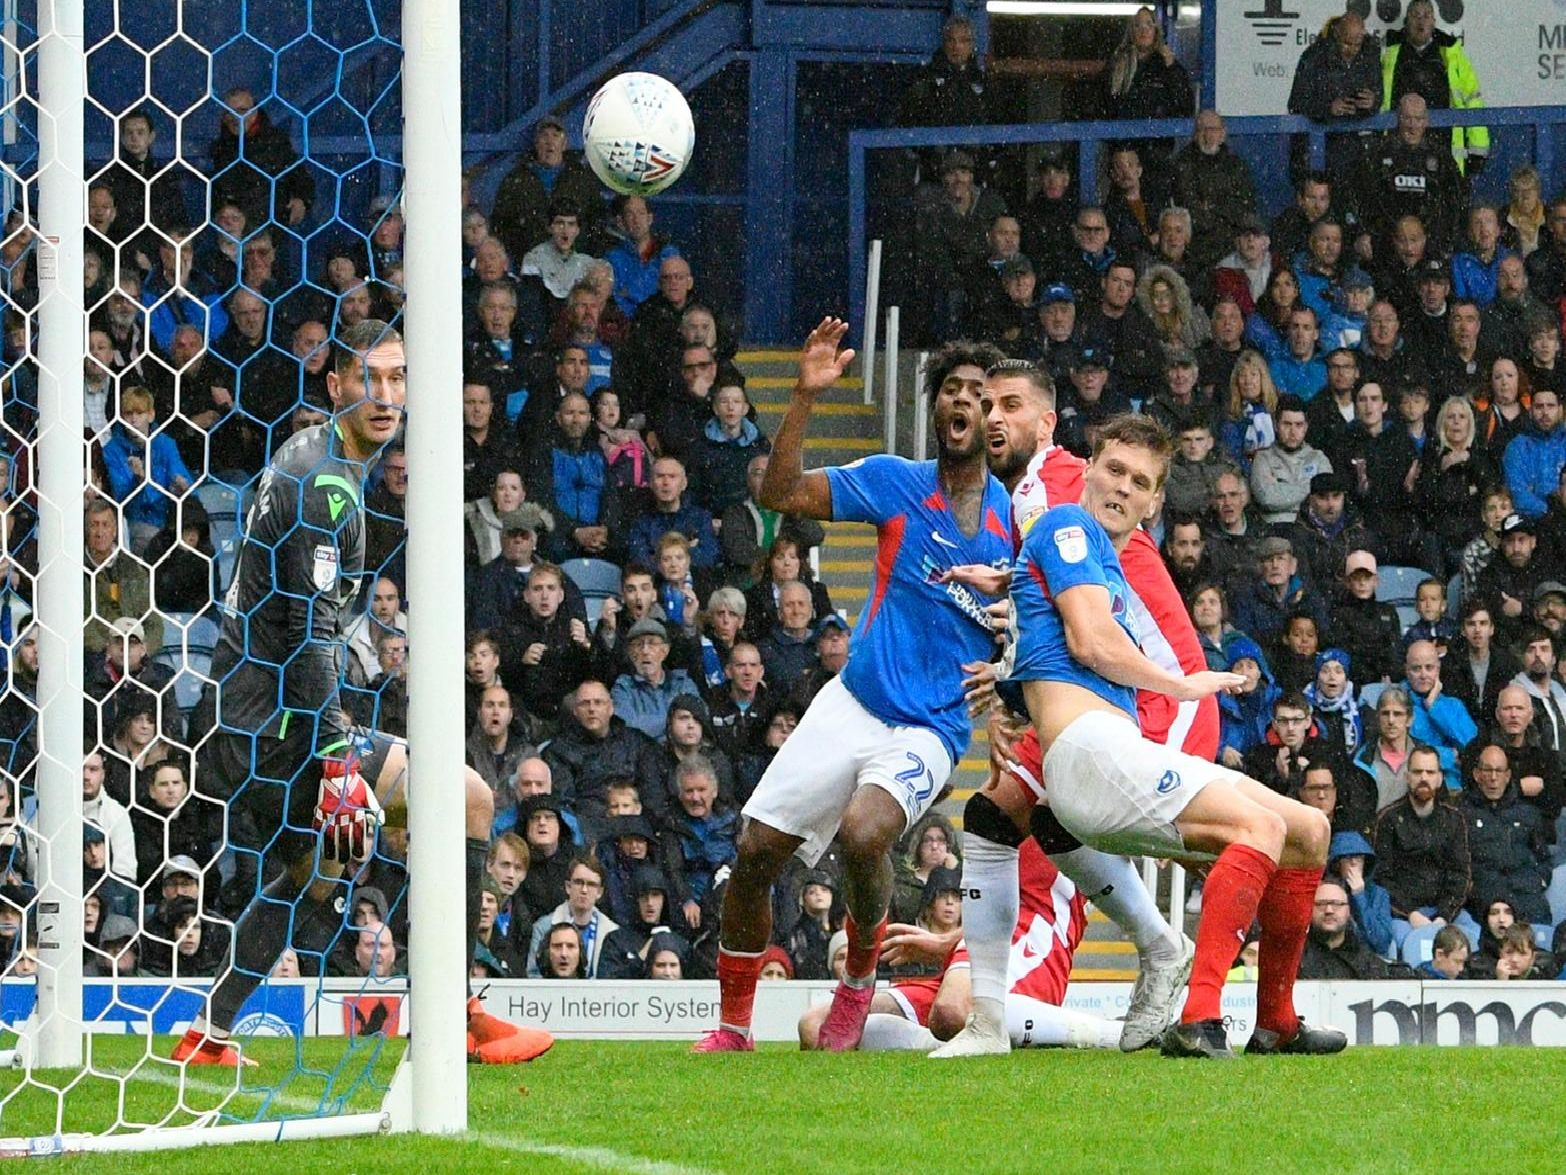 Sean Raggett (20) of Portsmouth heads a shot at goal which hits the post during the EFL Sky Bet League 1 match between Portsmouth and Gillingham at Fratton Park, Portsmouth, England on 12 October 2019.